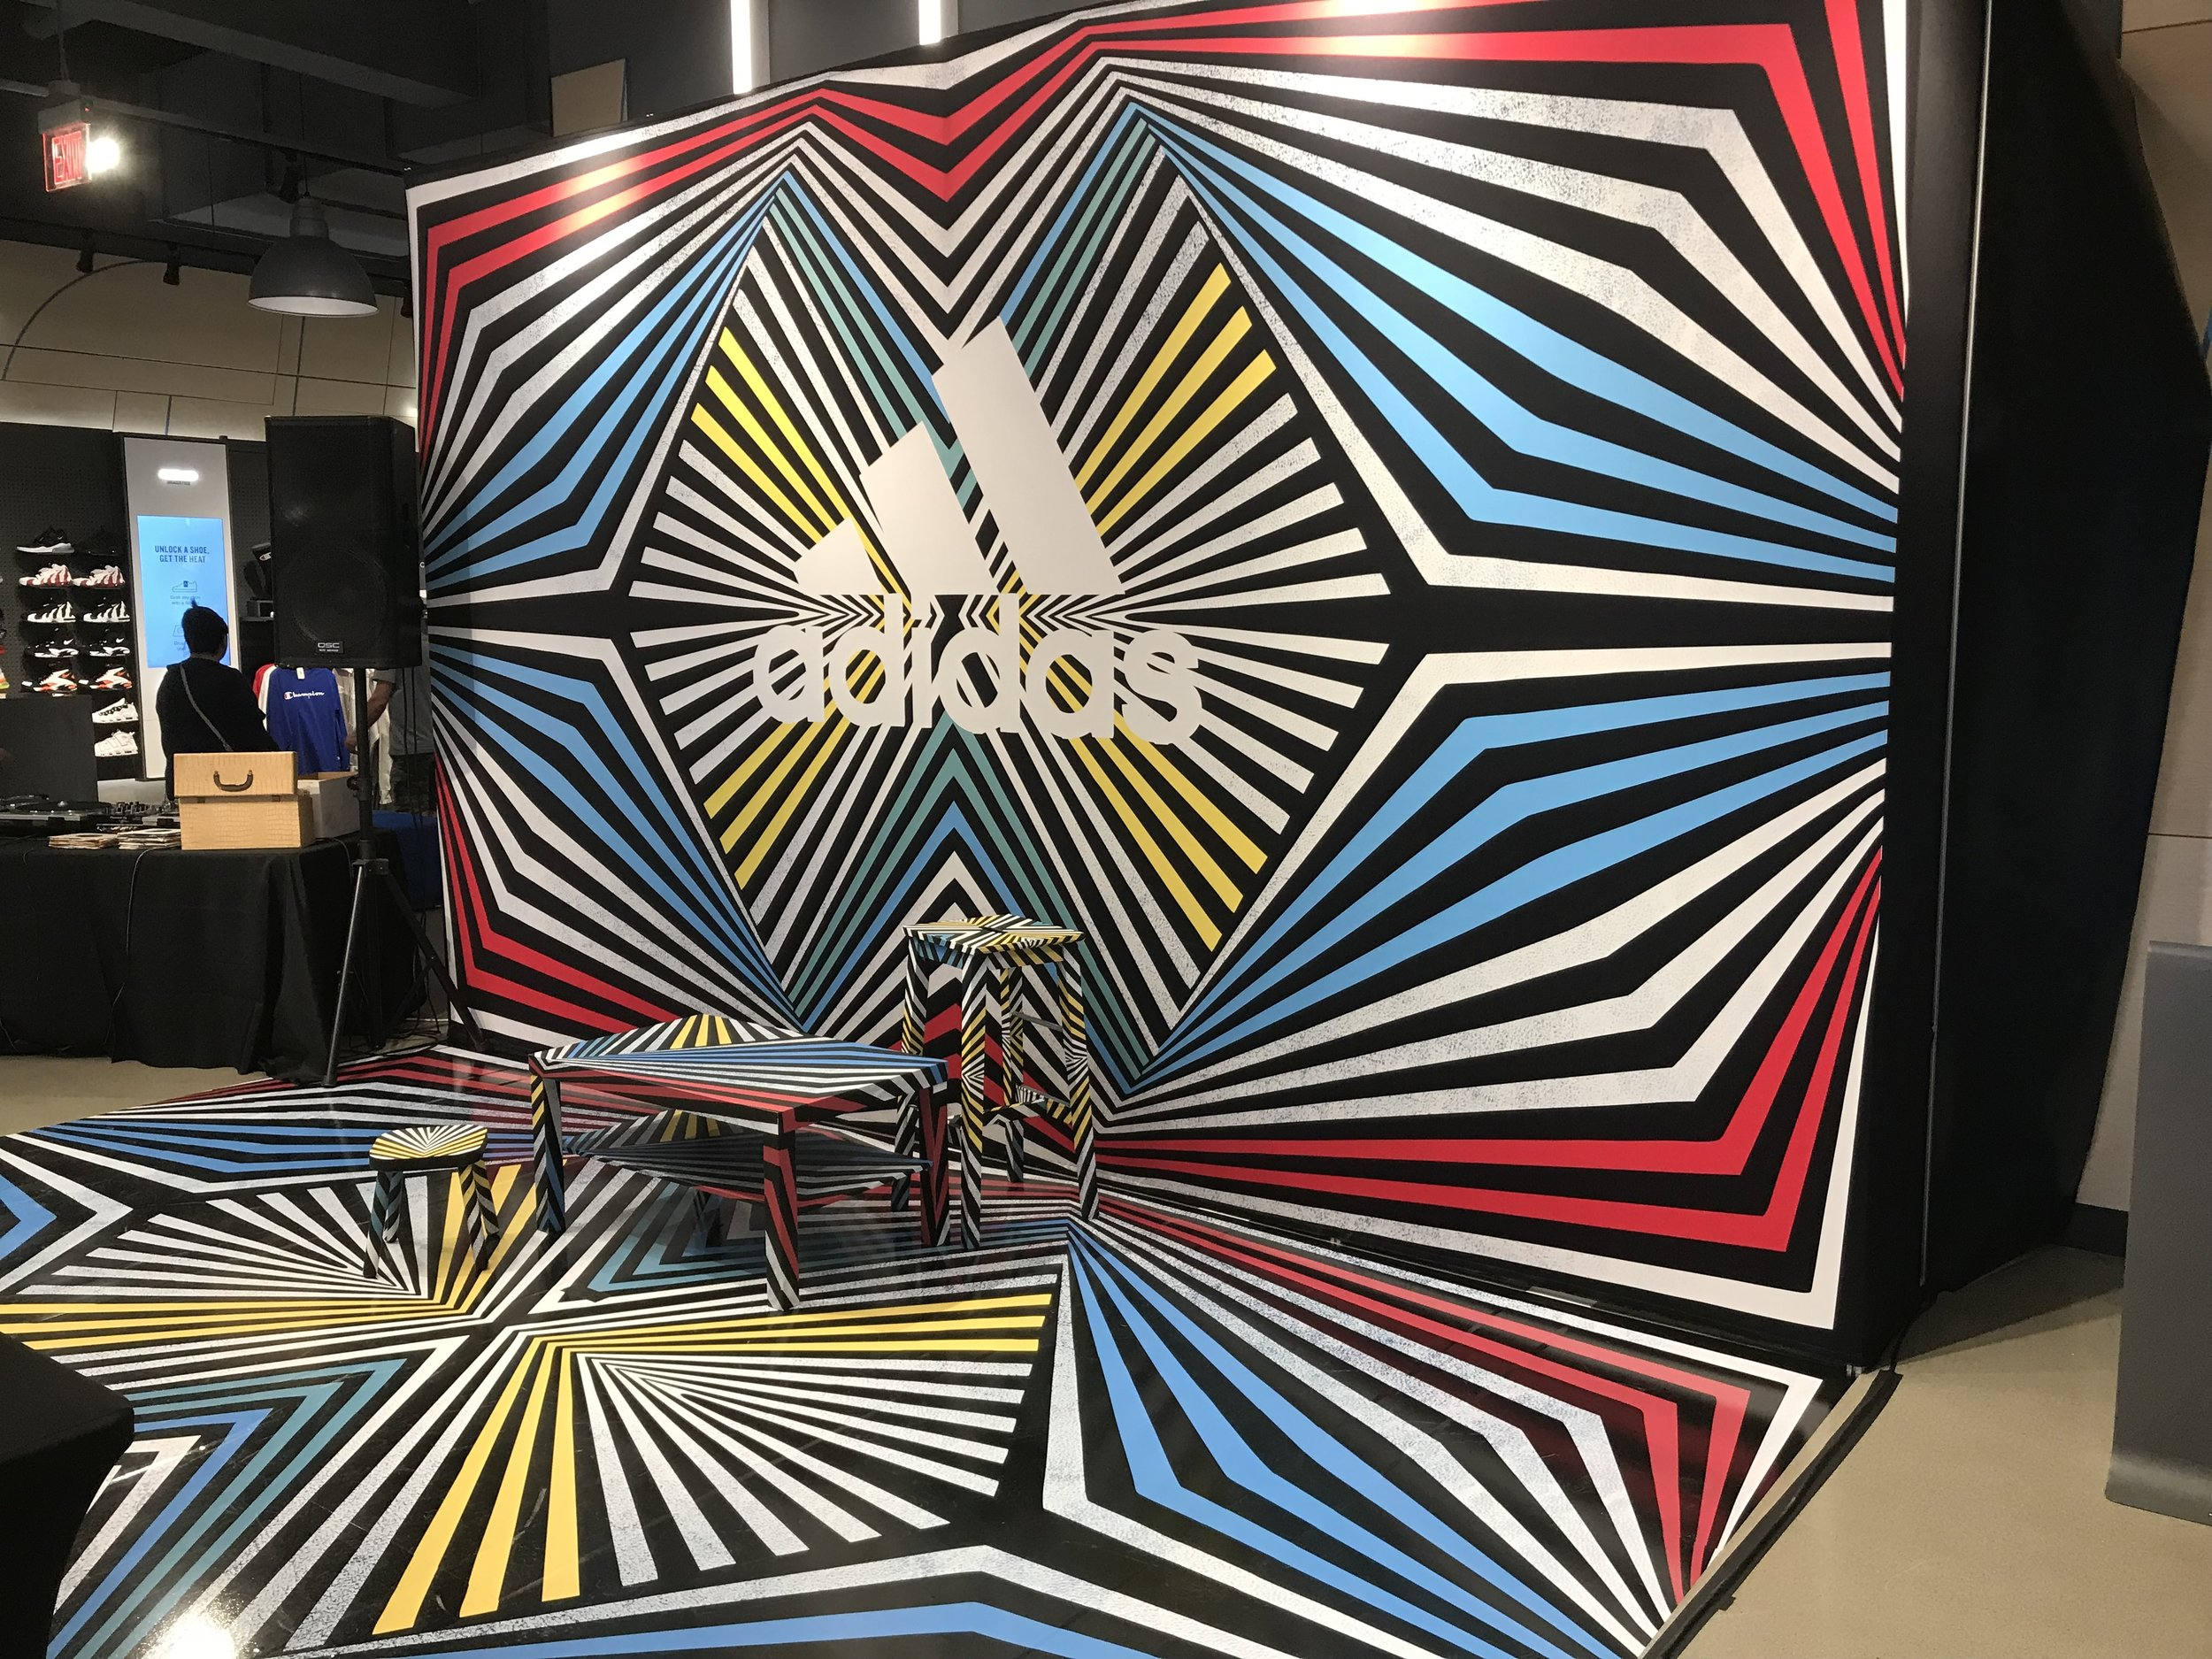 Adidas x Finish Line - Immersive in store installation [Design by LK MNDD, vinyl floor print, wrapped furniture and display wall